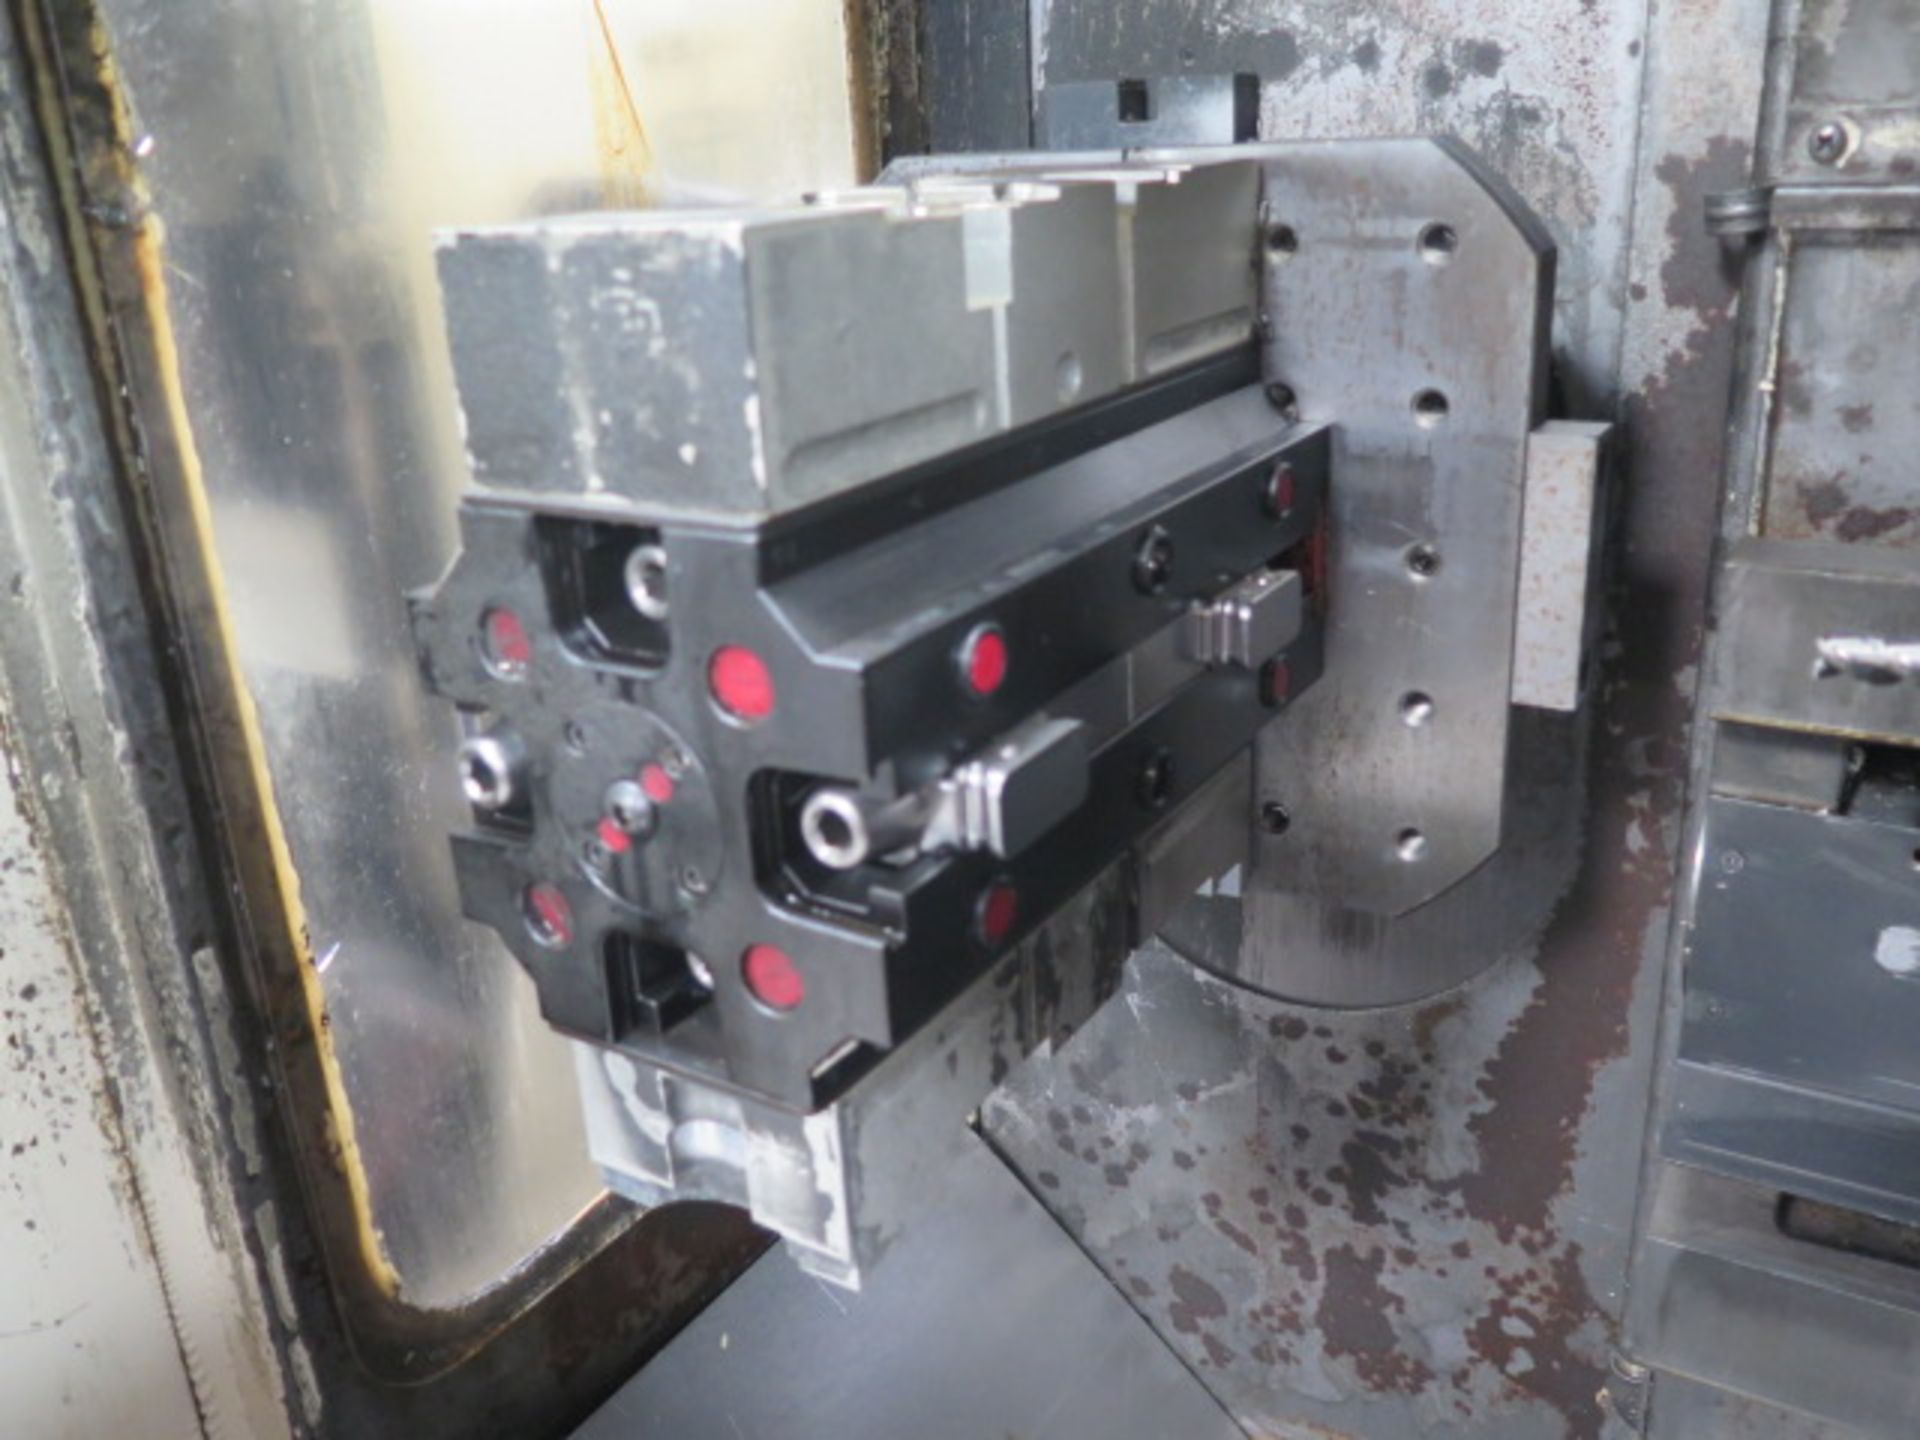 Tsugami MS3.10P Type MA3H 4-Axis 10-Pallet CNC HMC (HAS X-AXIS PROBLEM), SOLD AS IS - Image 10 of 20